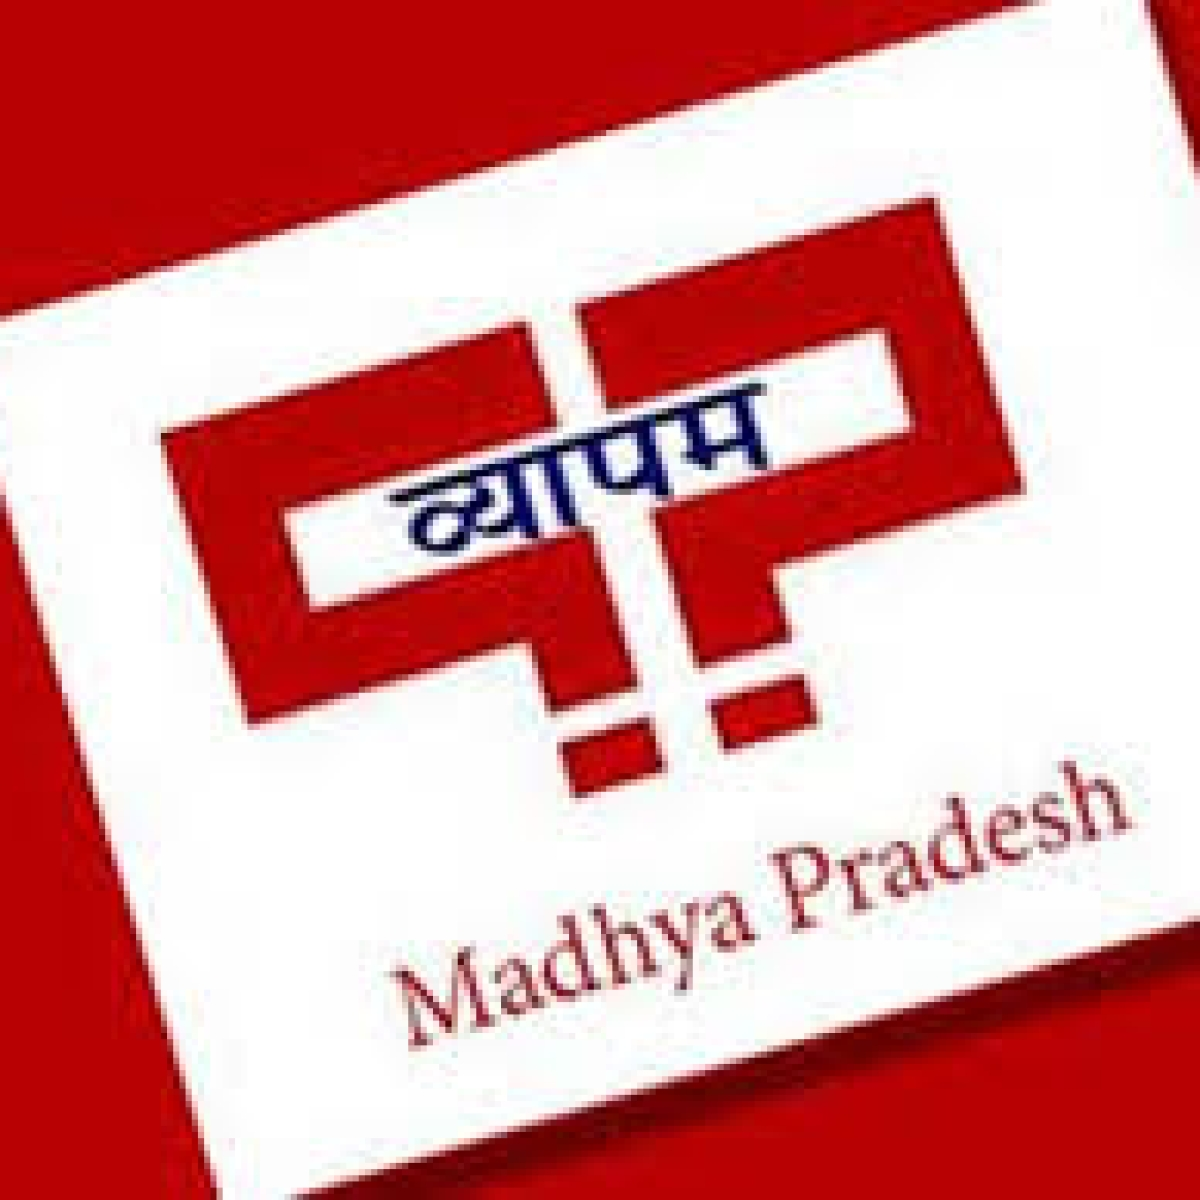 Vyapam scam: Anticipatory bail of three accused rejected